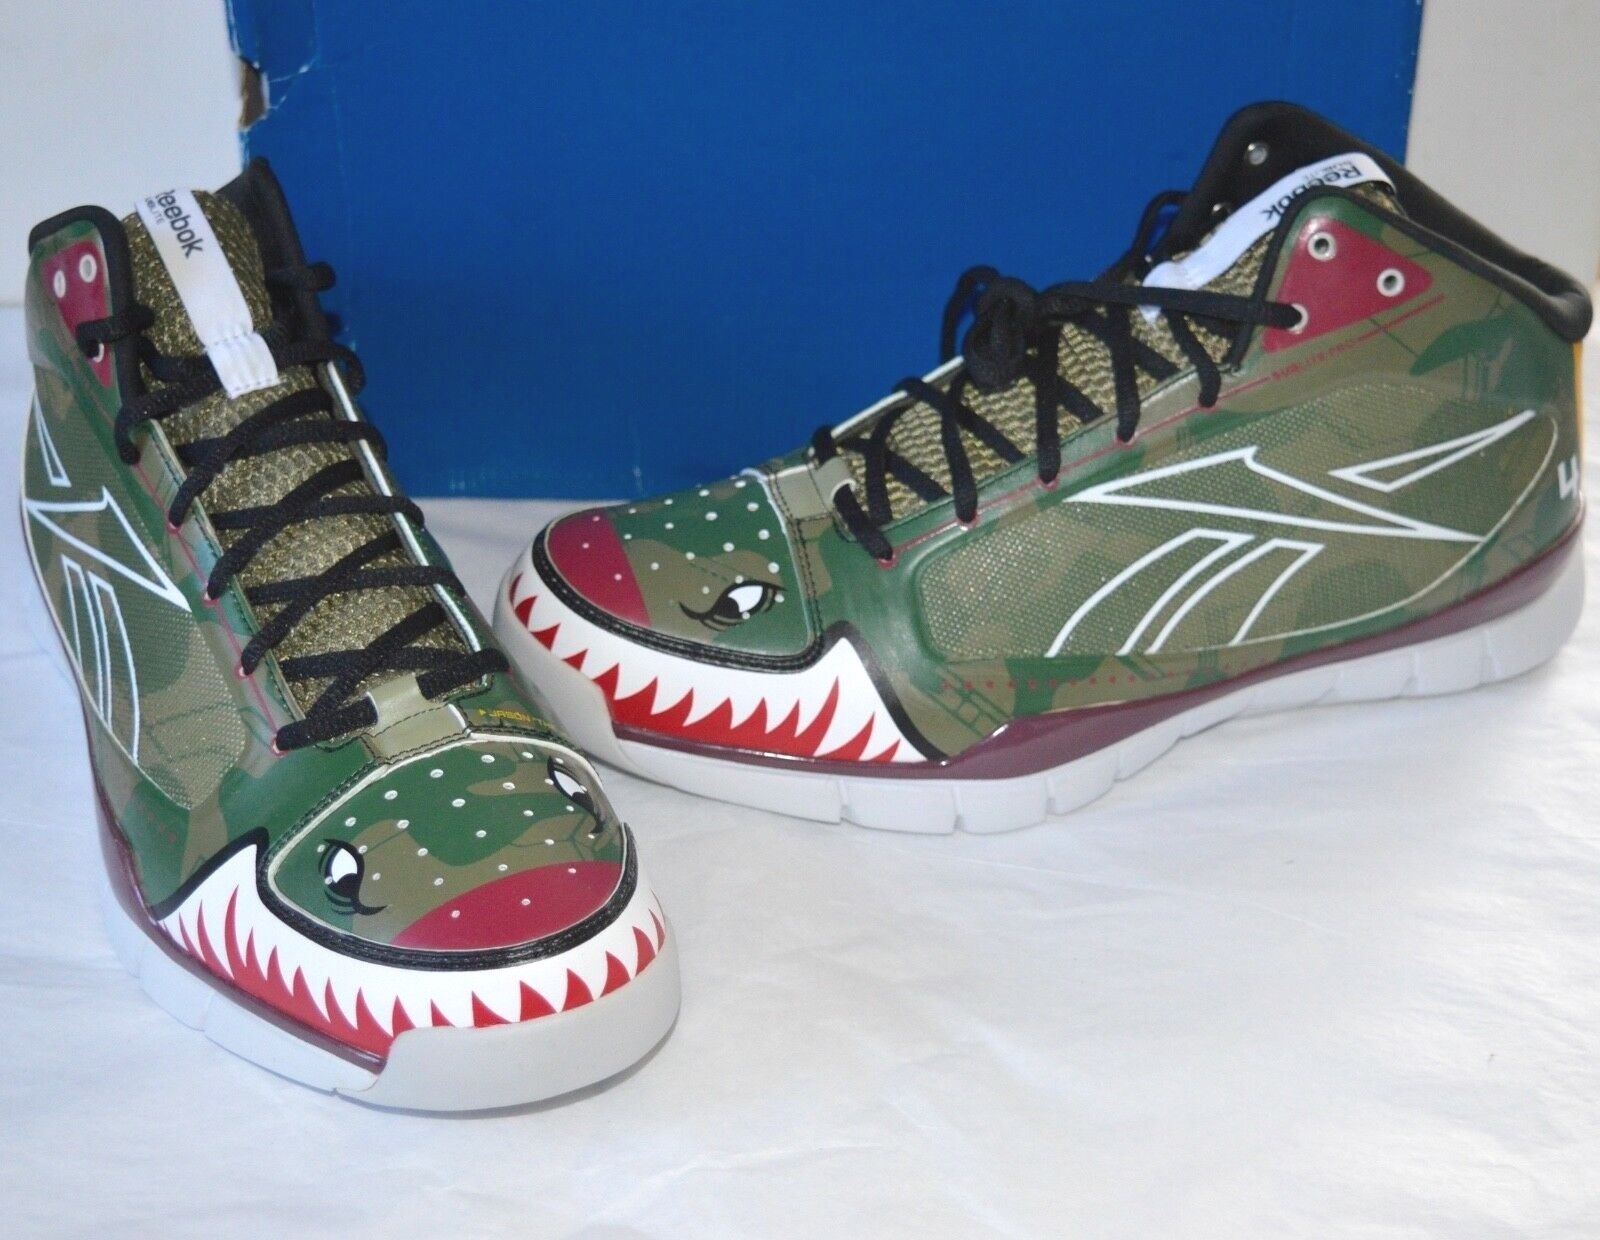 New Reebok (PE) Sublite Pro Rise Jason Terry Player Exclusive Fighter Jet Camo